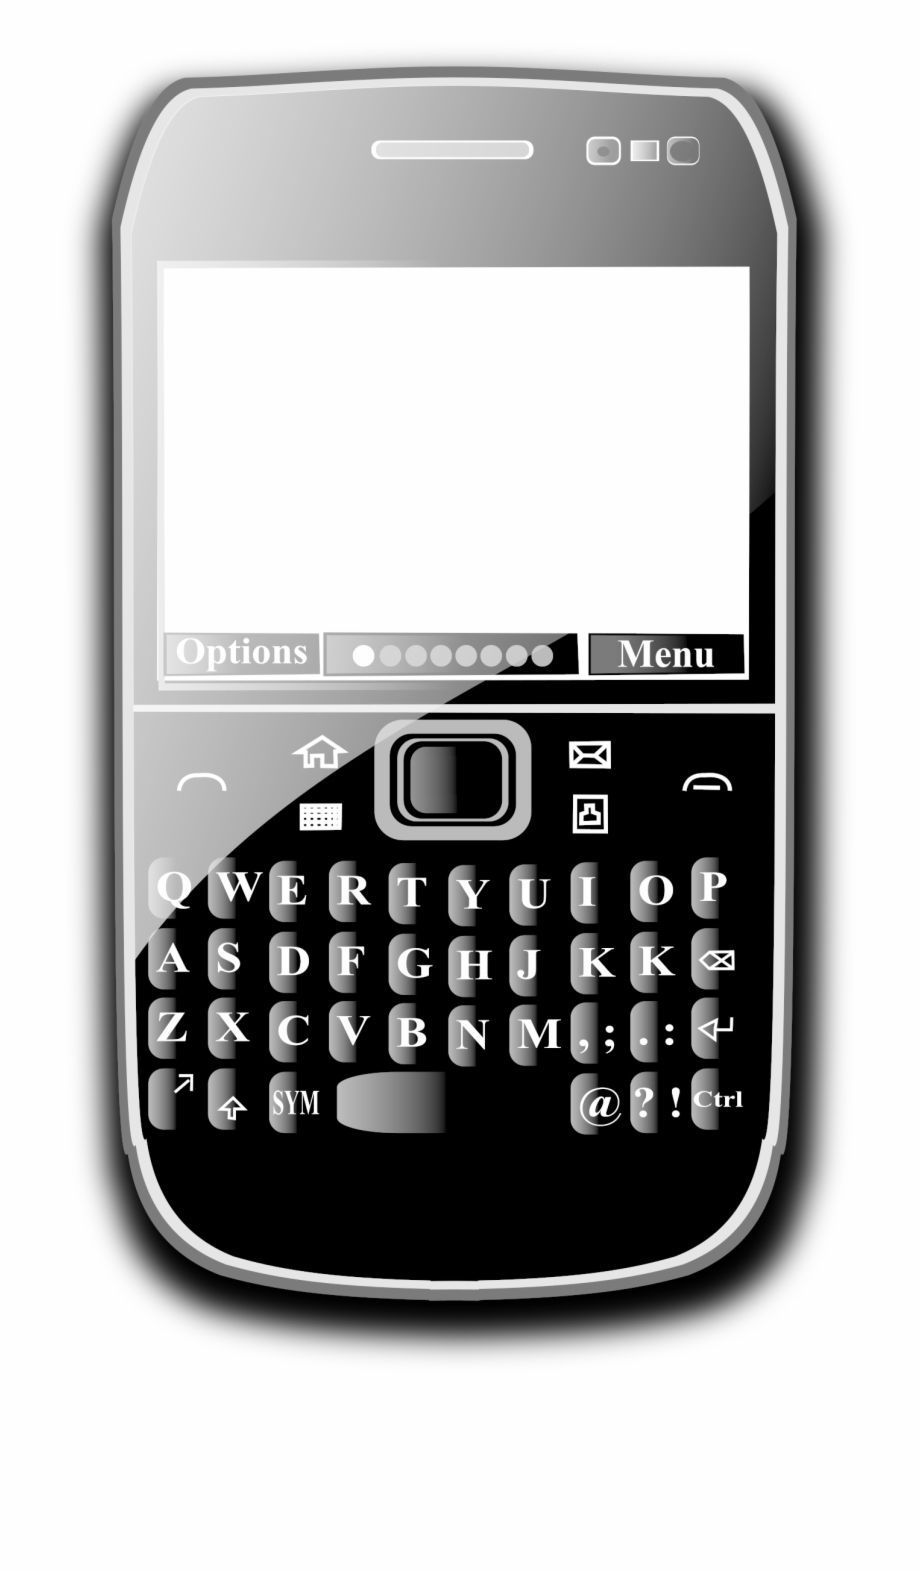 This Free Icons Png Design Of Openclipart On Mobile.